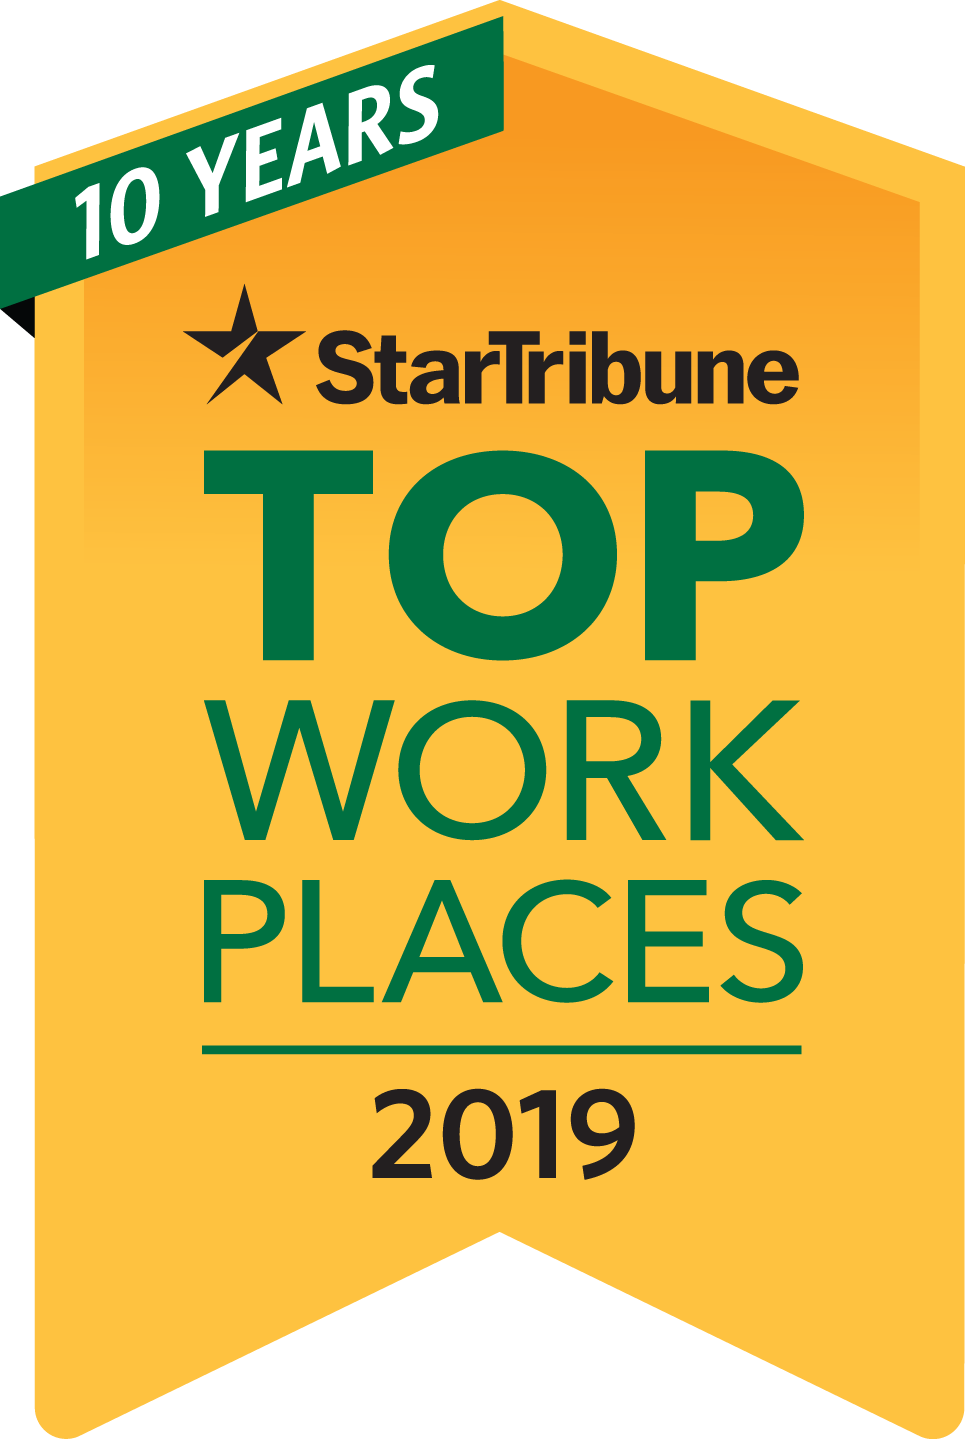 top work places 2019 star tribune